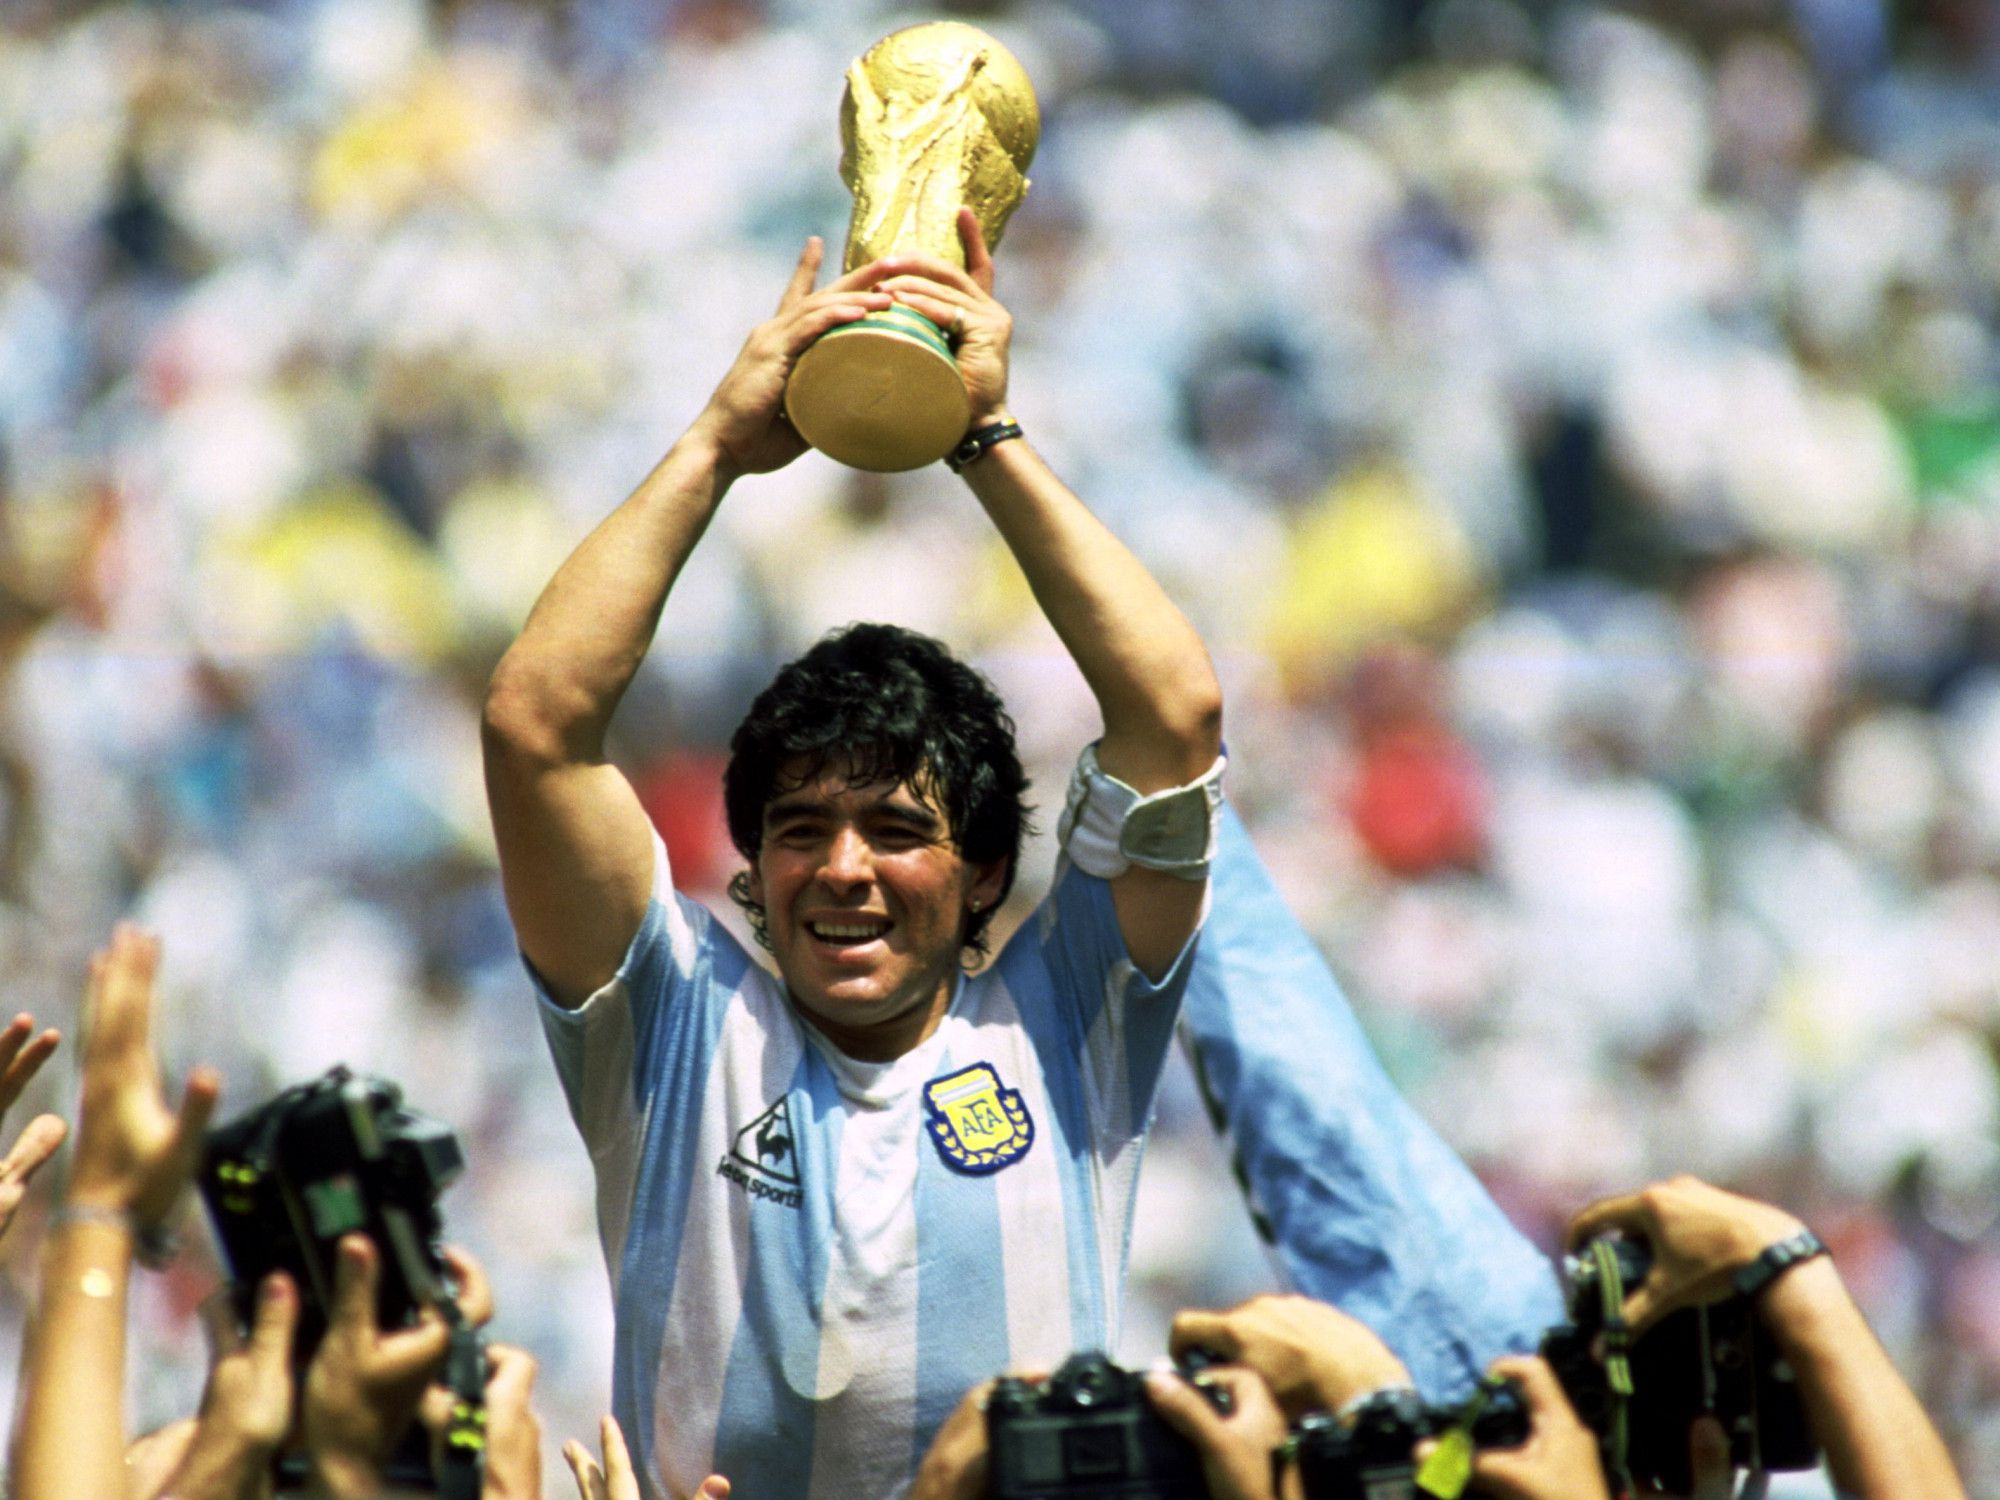 Diego Maradona Playing Football Player With World Cup